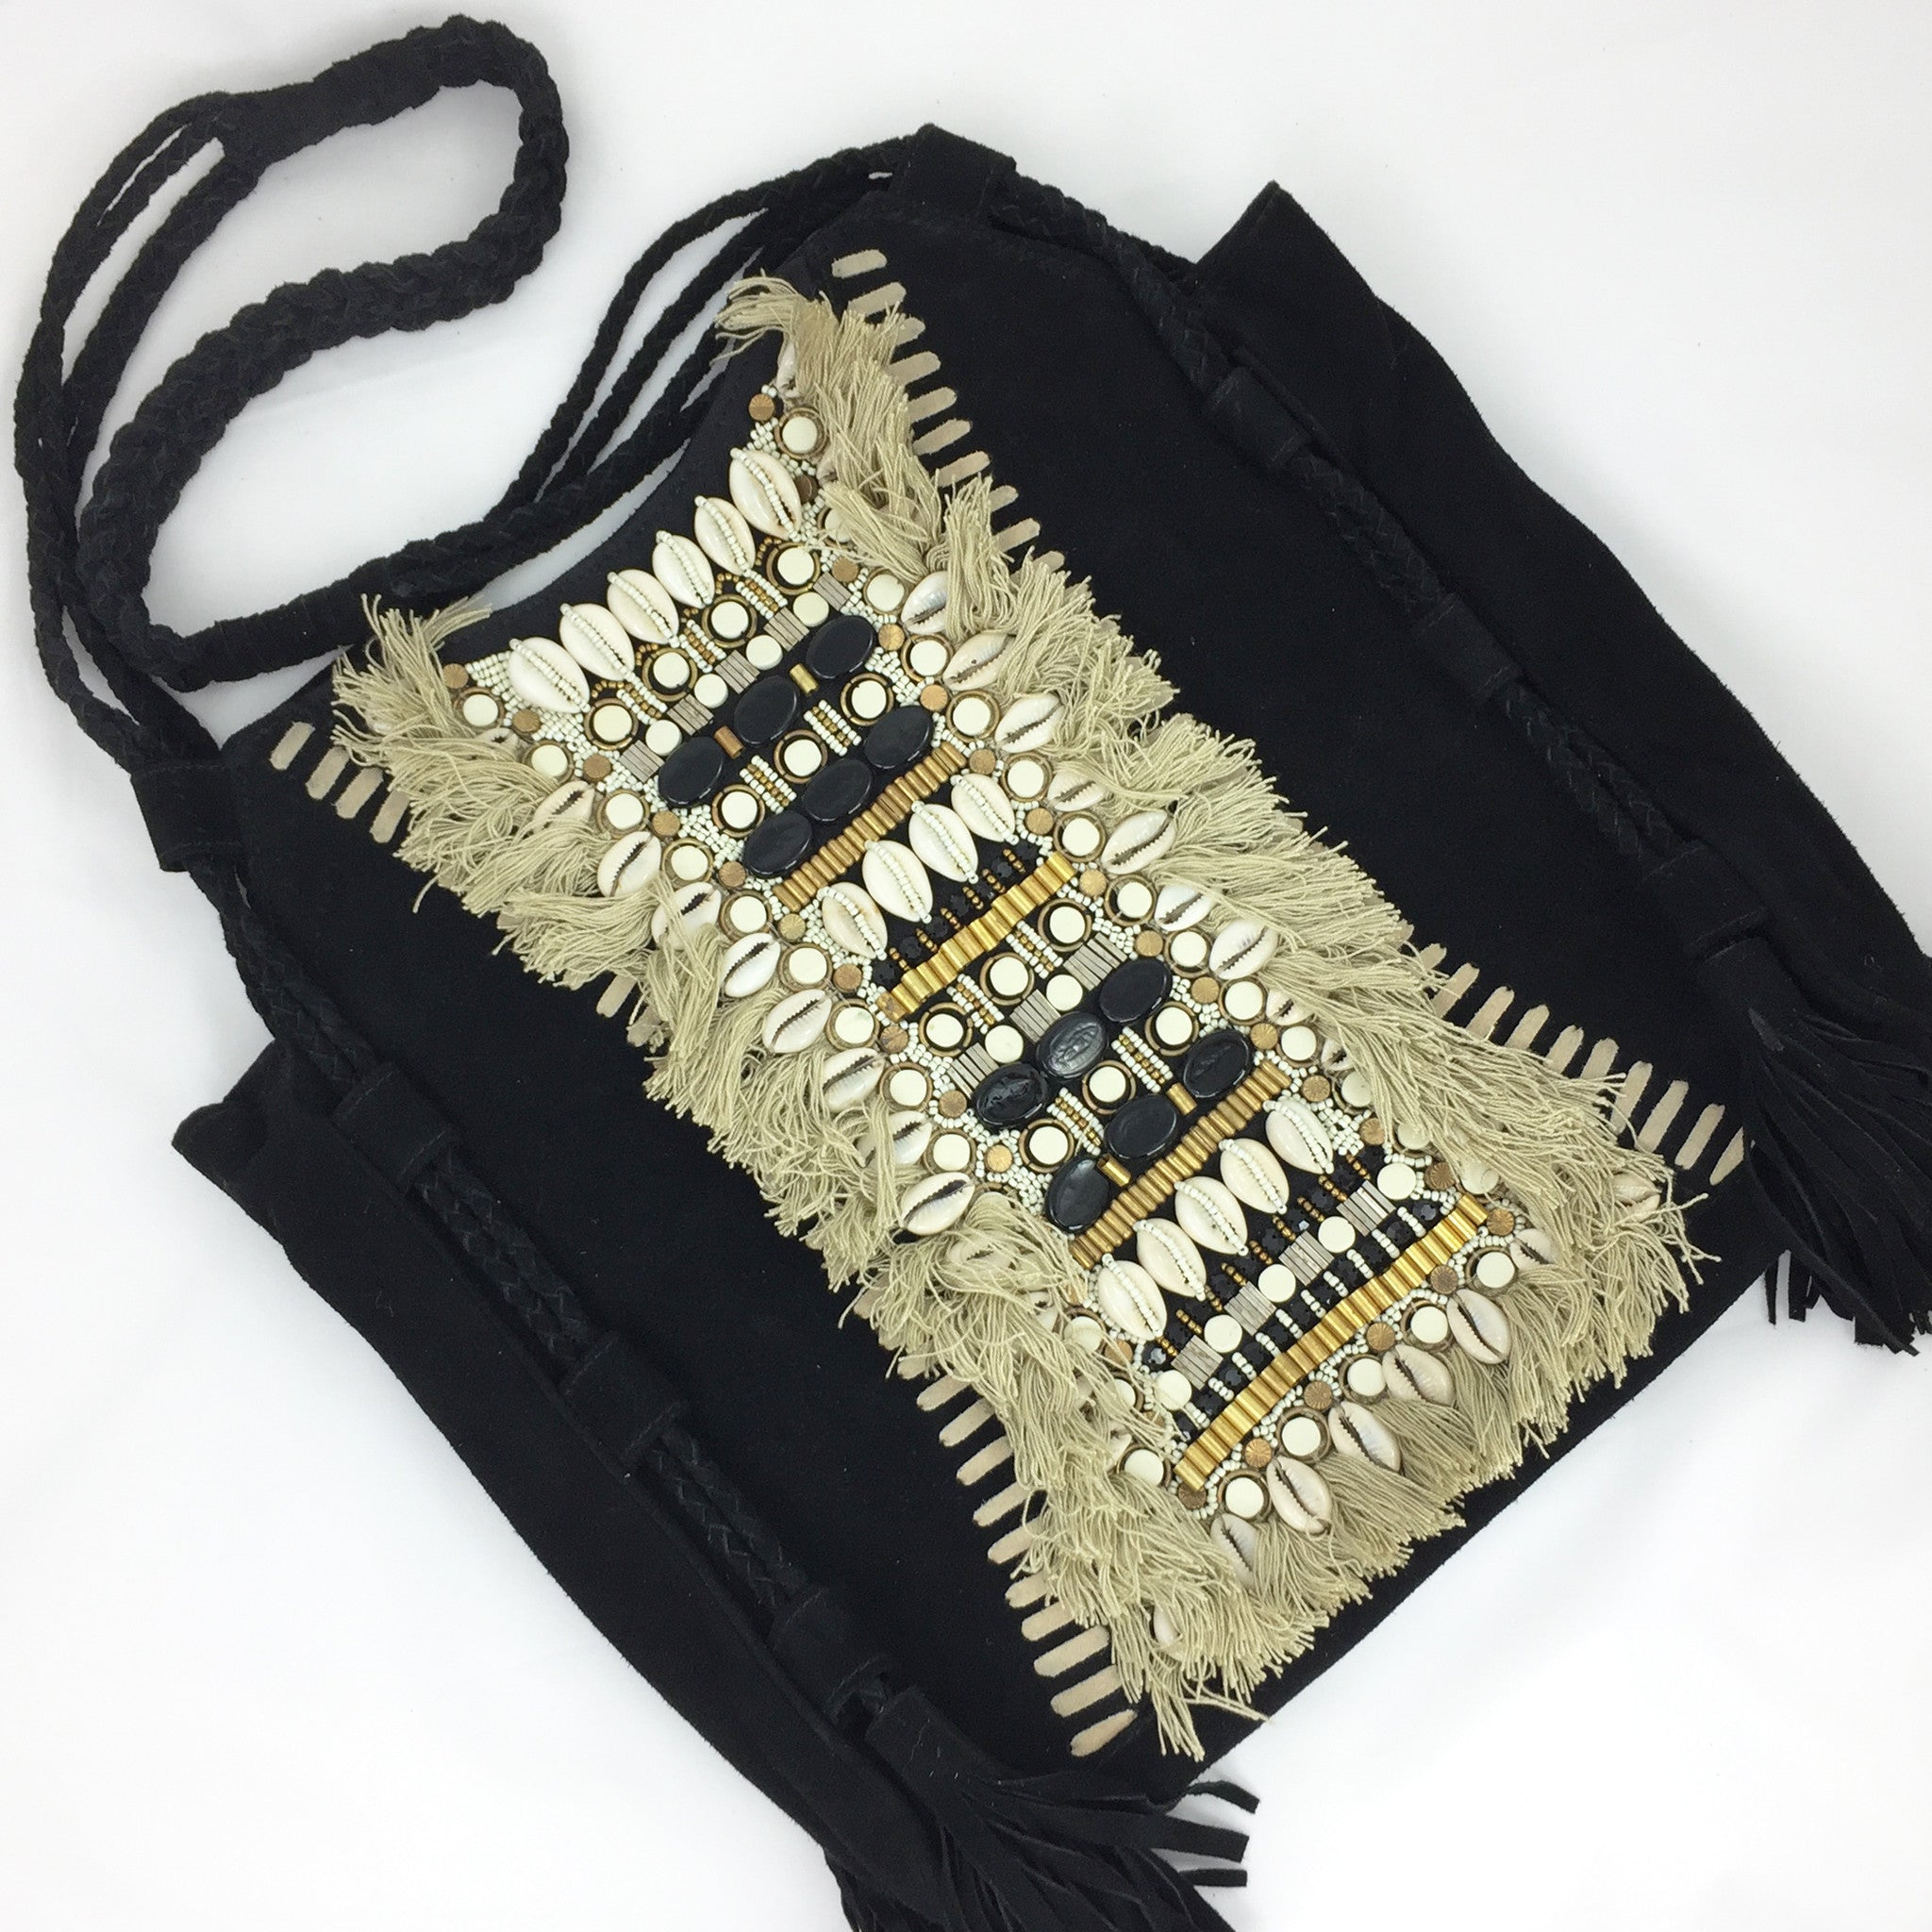 Suede Beaded Handbag - Black